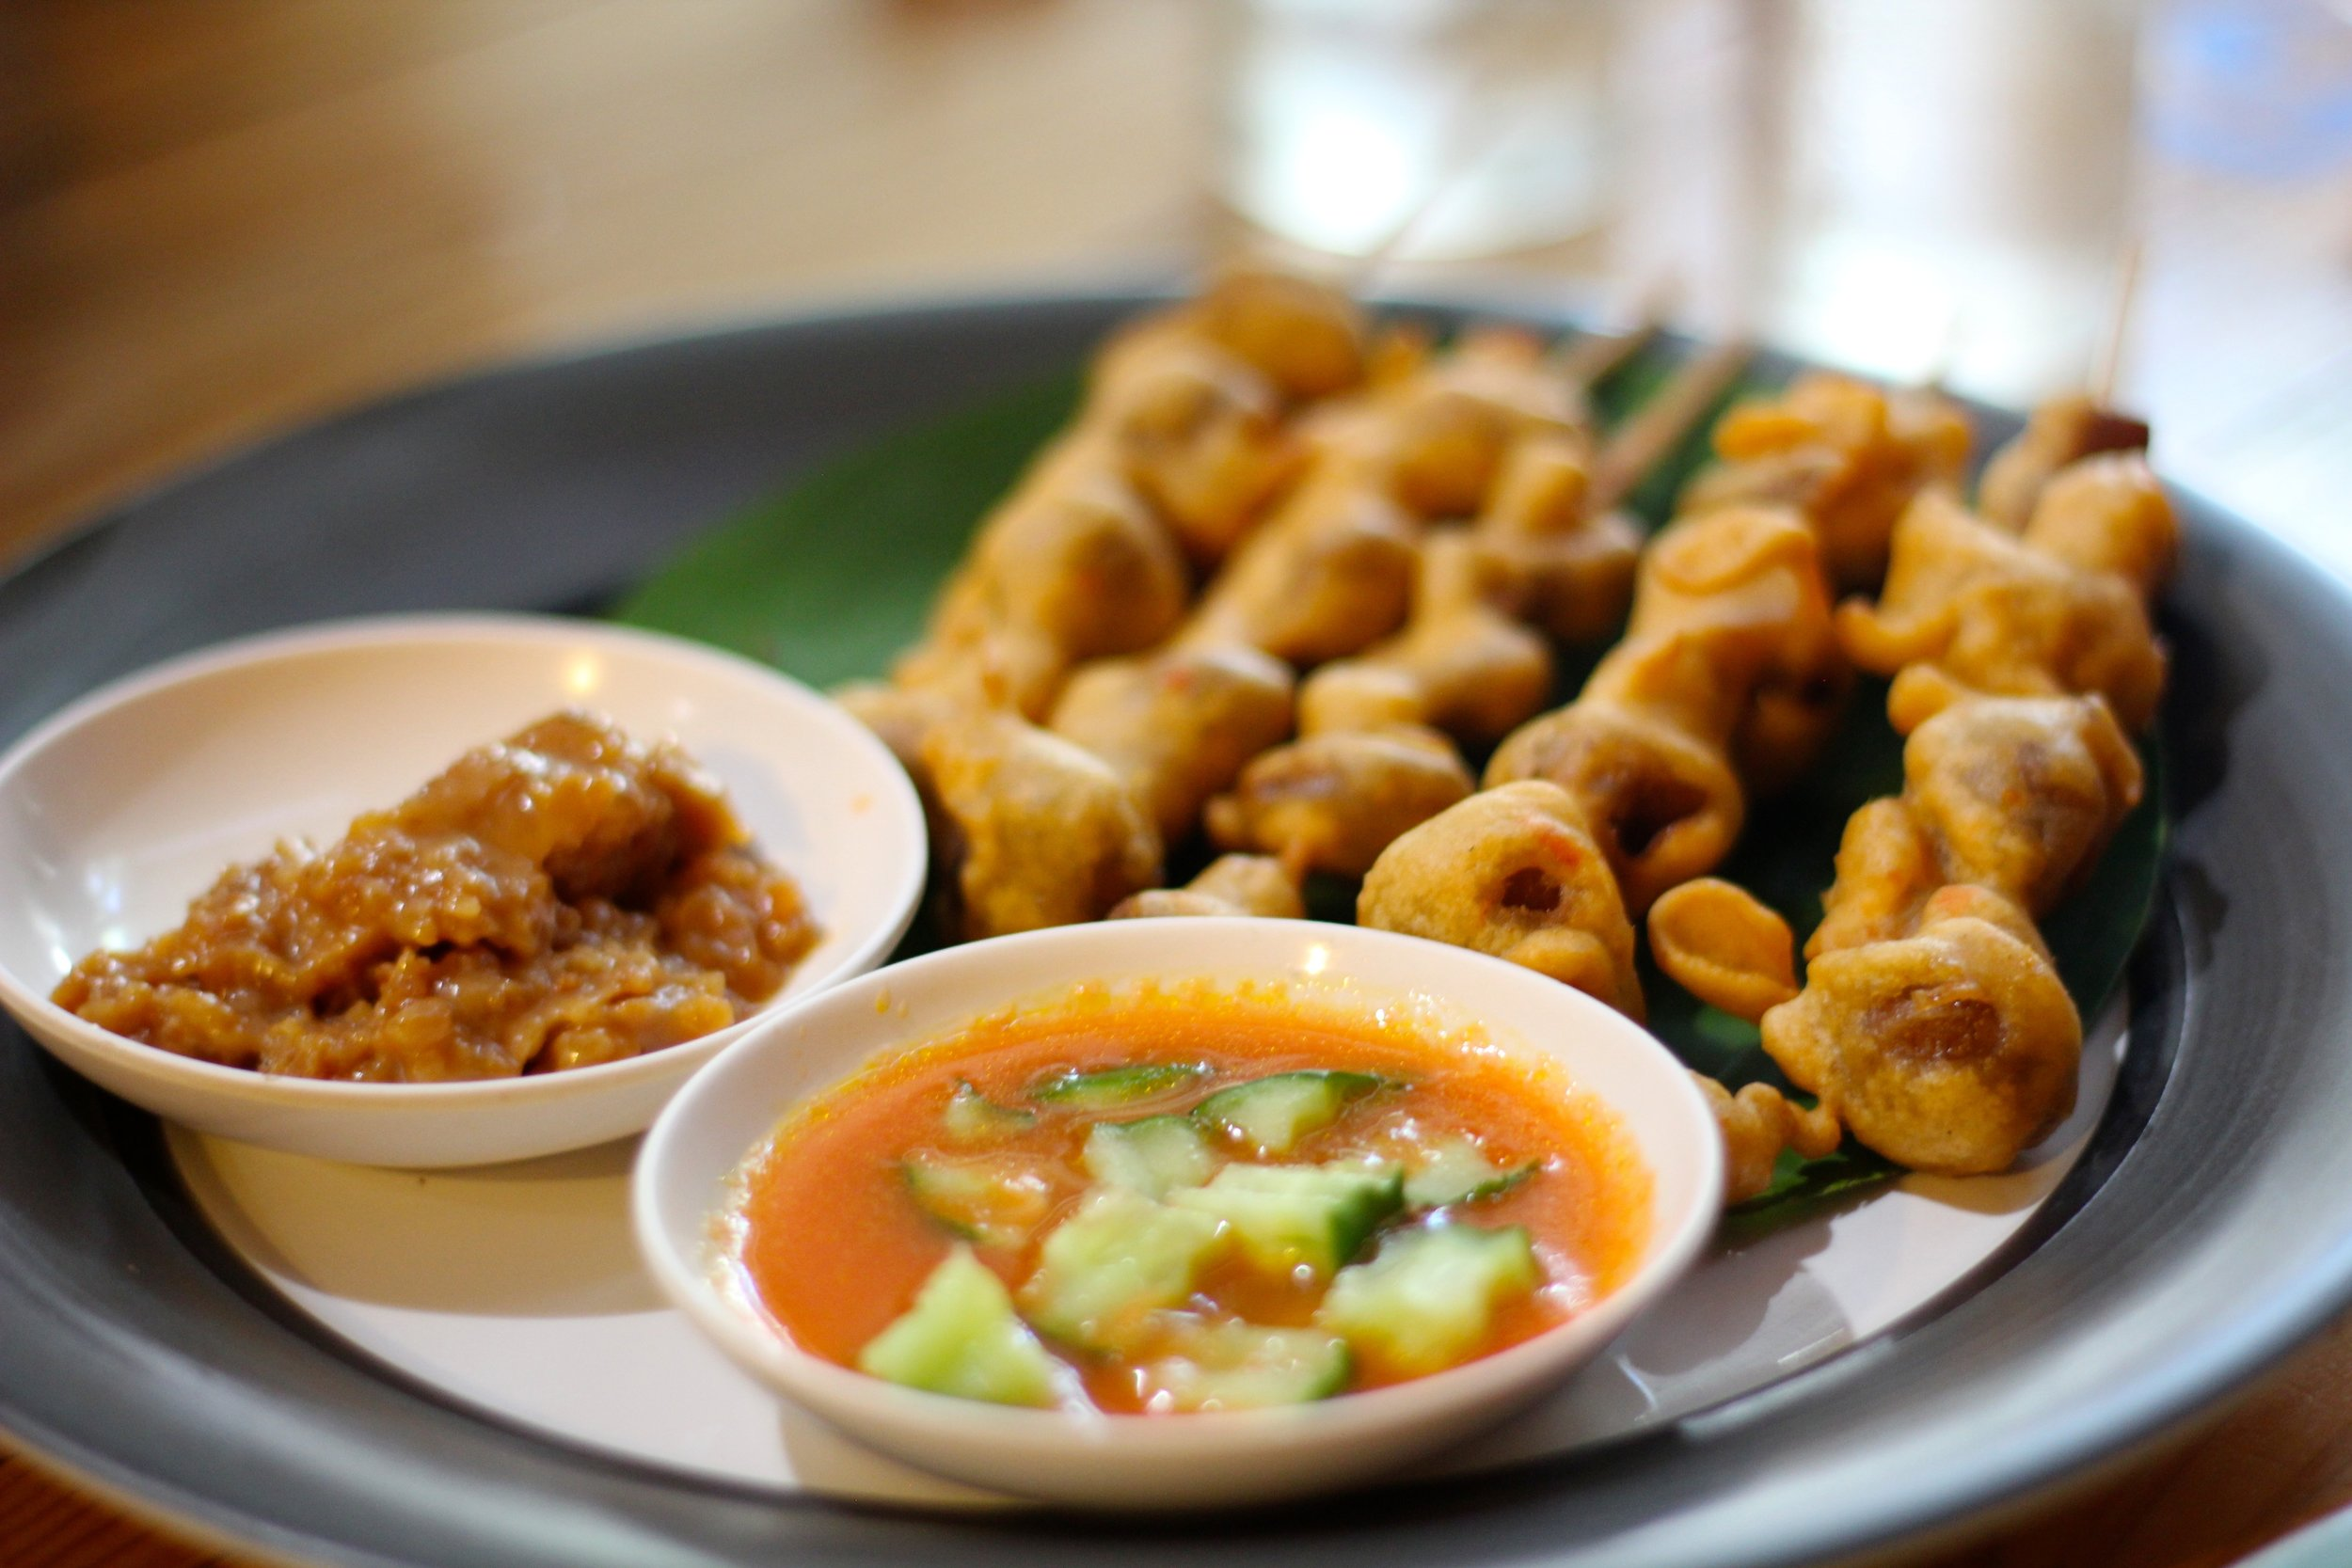 Fried mushrooms with peanut sauce and cucumbers at Pun Pun vegetarian